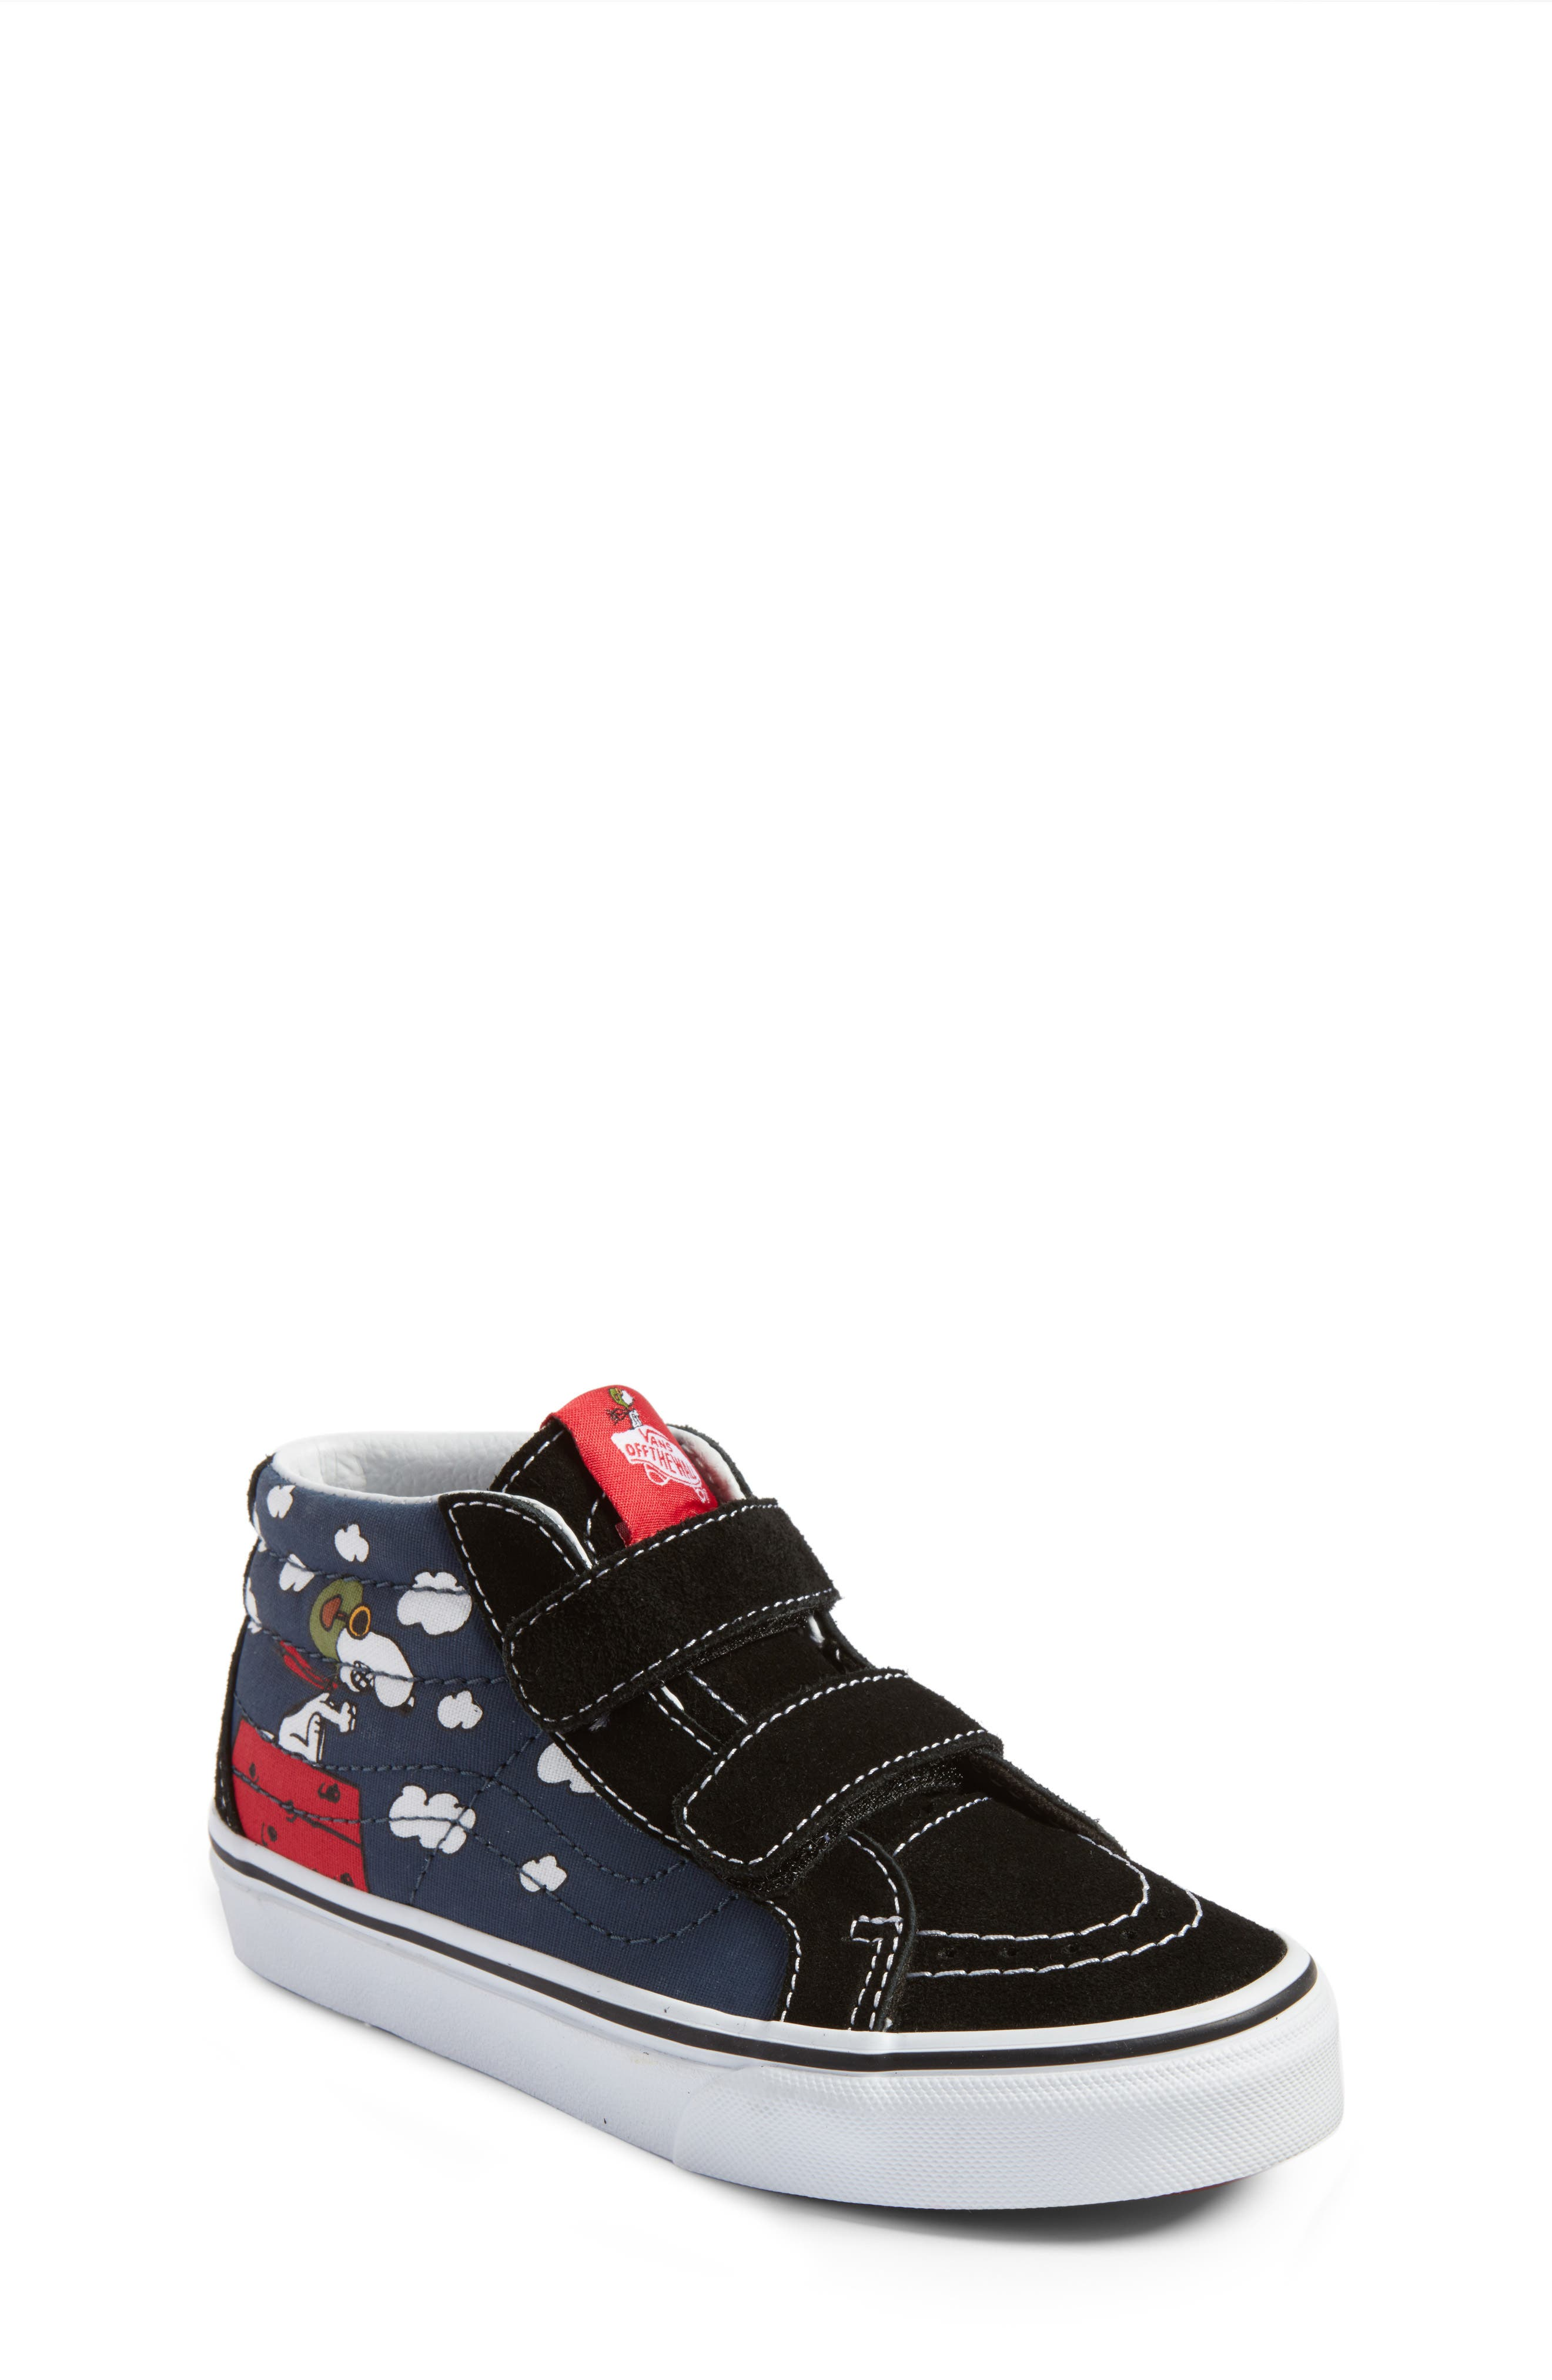 x Peanuts SK8-Mid Reissue V Sneaker,                         Main,                         color, Flying Ace/ Blue Canvas